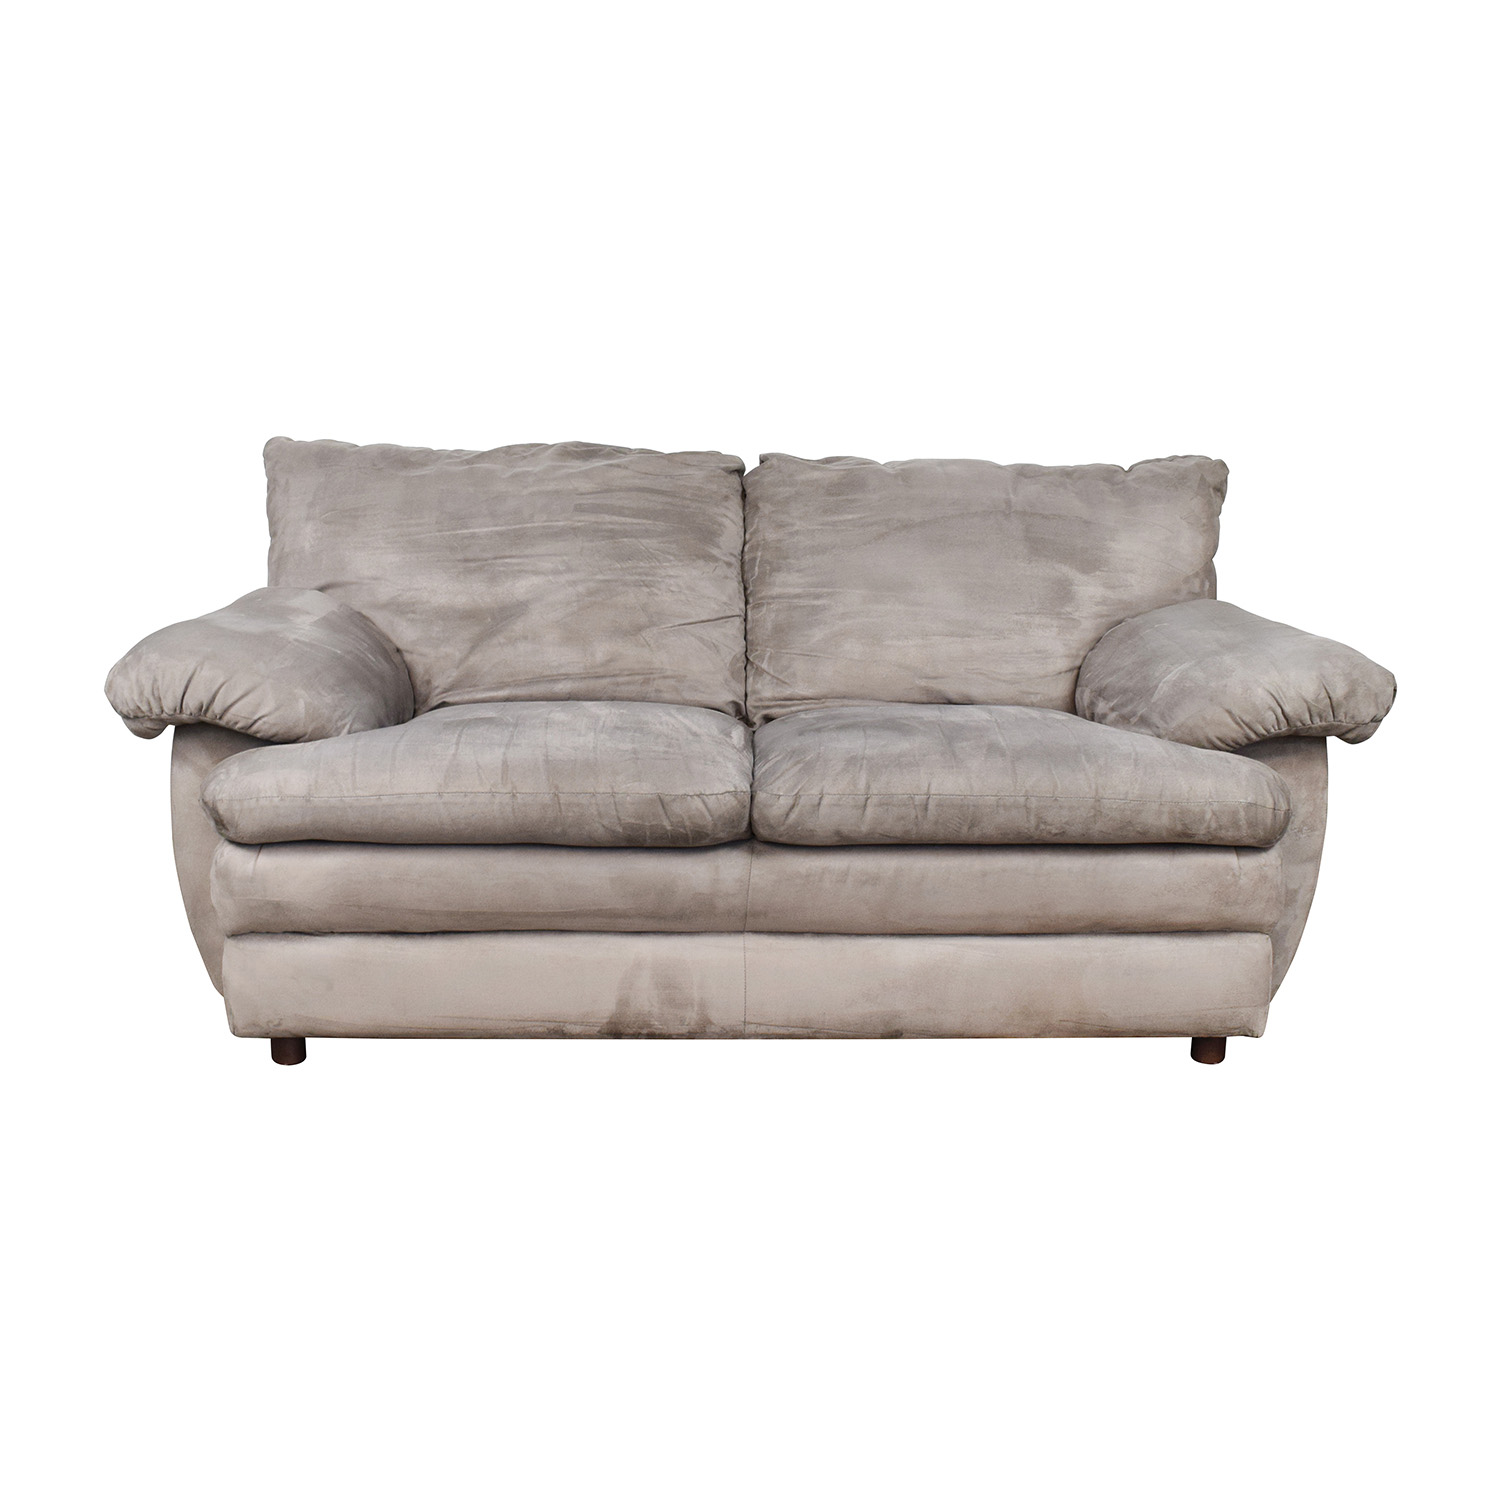 Microfiber Grey Couch On